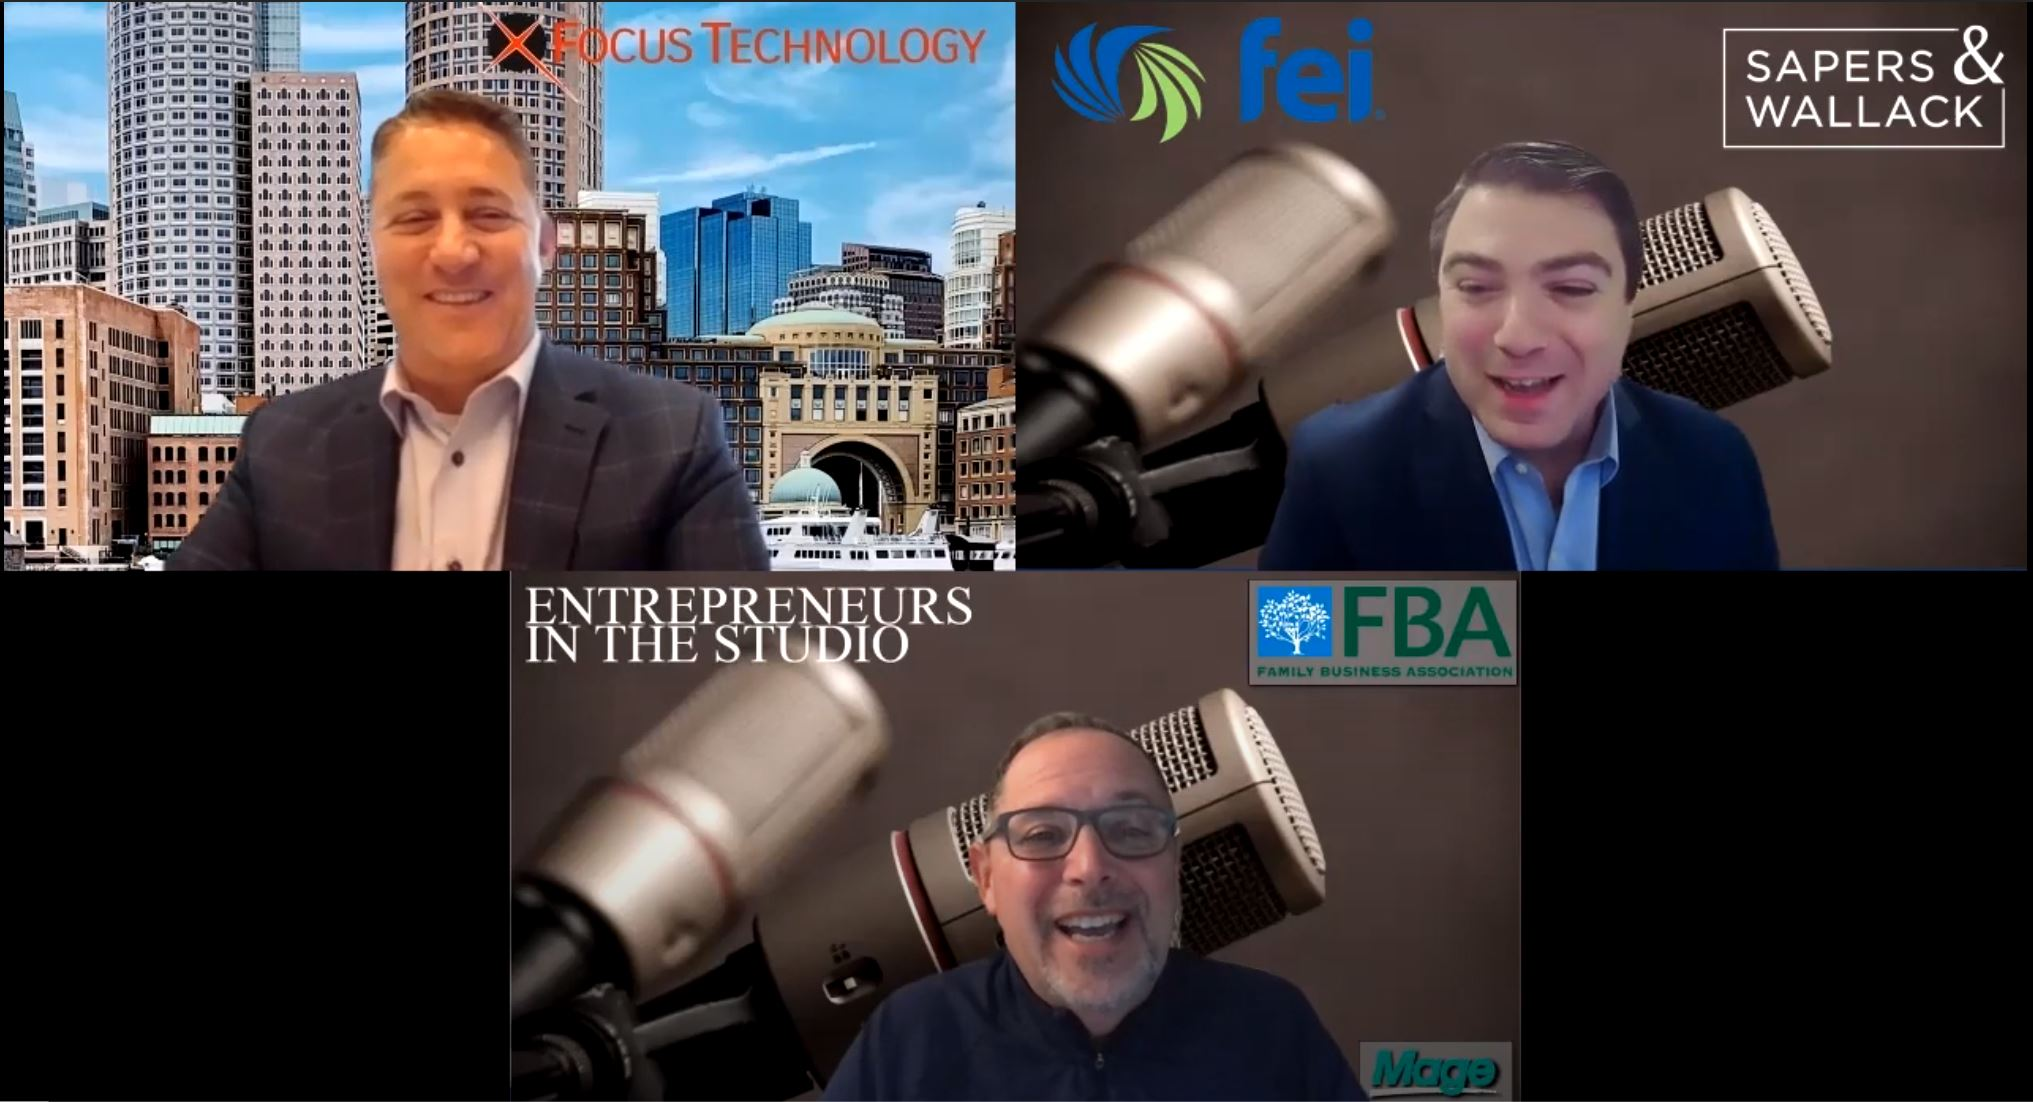 """""""Managed IT Services & Unlocking The Power Of Your Company"""" with Doug Alexander of Focus Technology"""